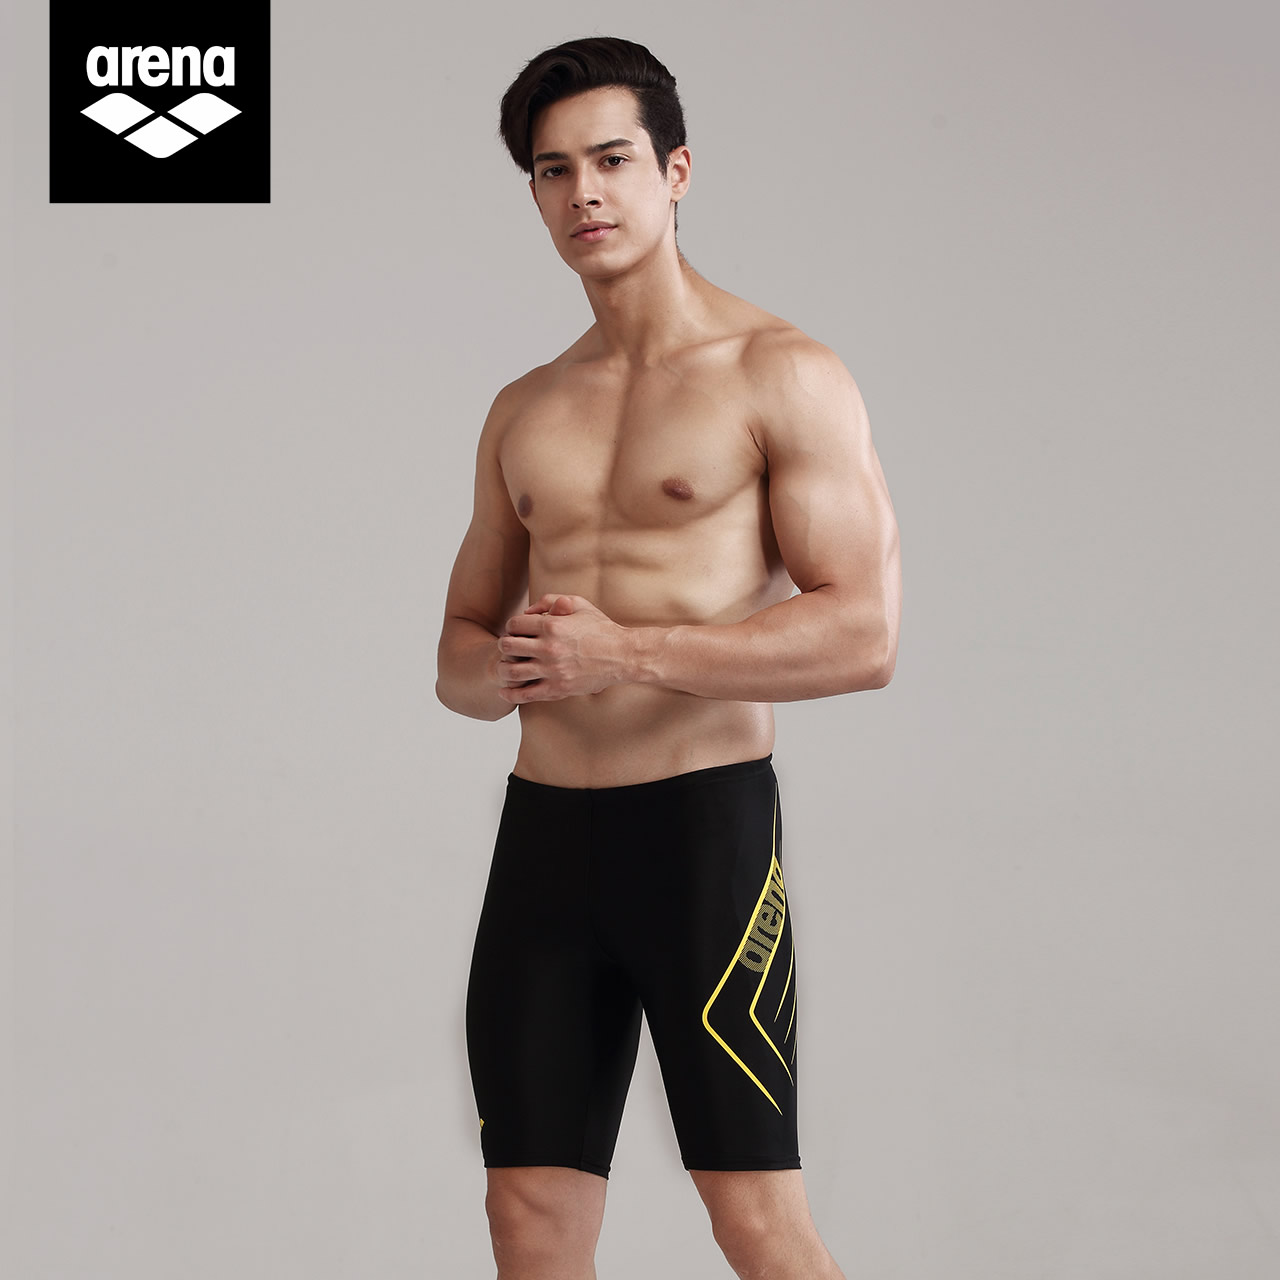 7f08d4d948 ... lightbox moreview · lightbox moreview · lightbox moreview · lightbox  moreview. PrevNext. arena Ariane swimming trunks men's anti-embarrassing ...